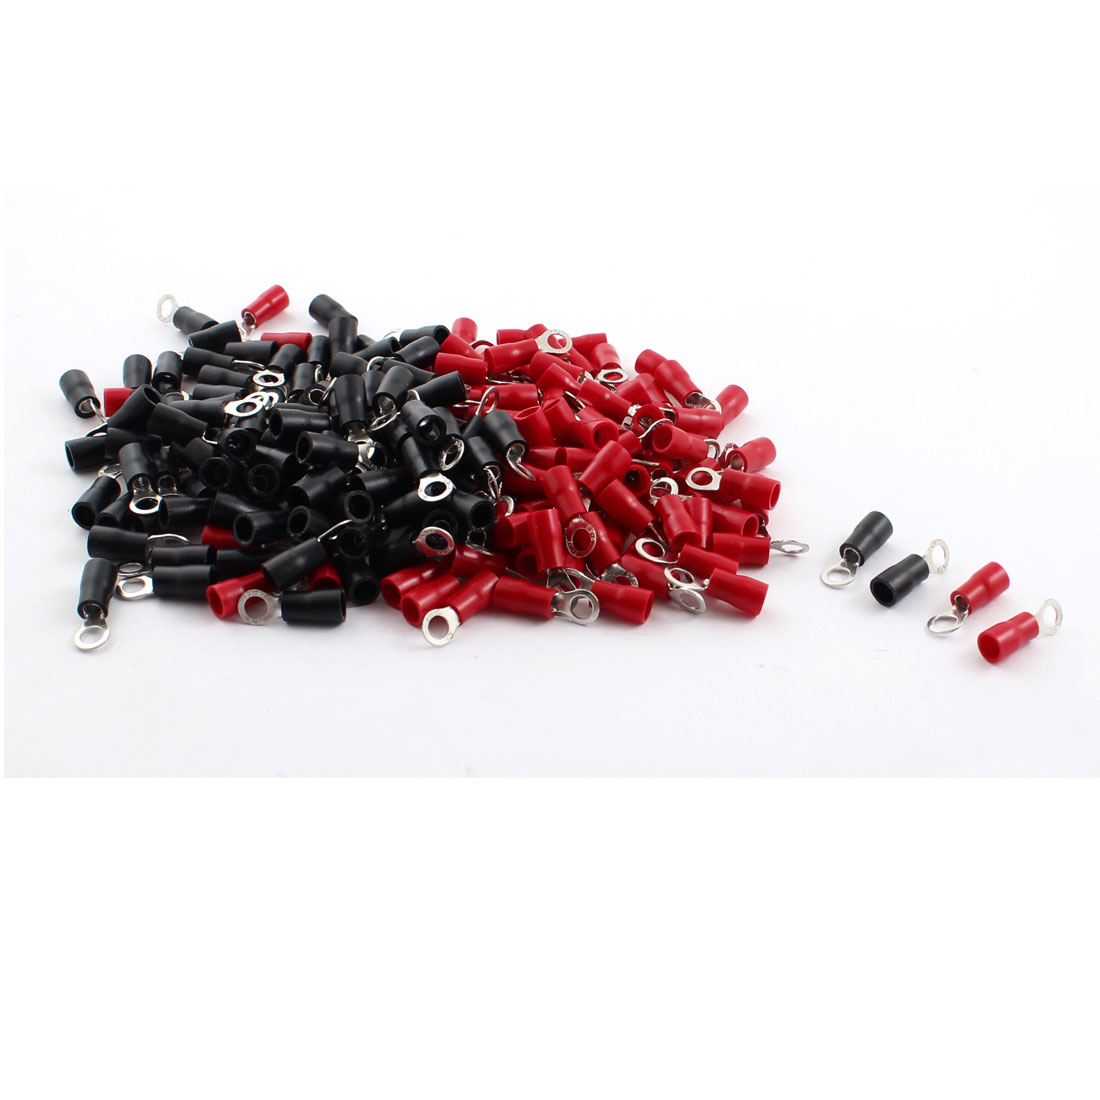 200Pcs 4.3mm Hole Insulated Ring Crimp Terminal Connectors for AWG 16-14 Cable